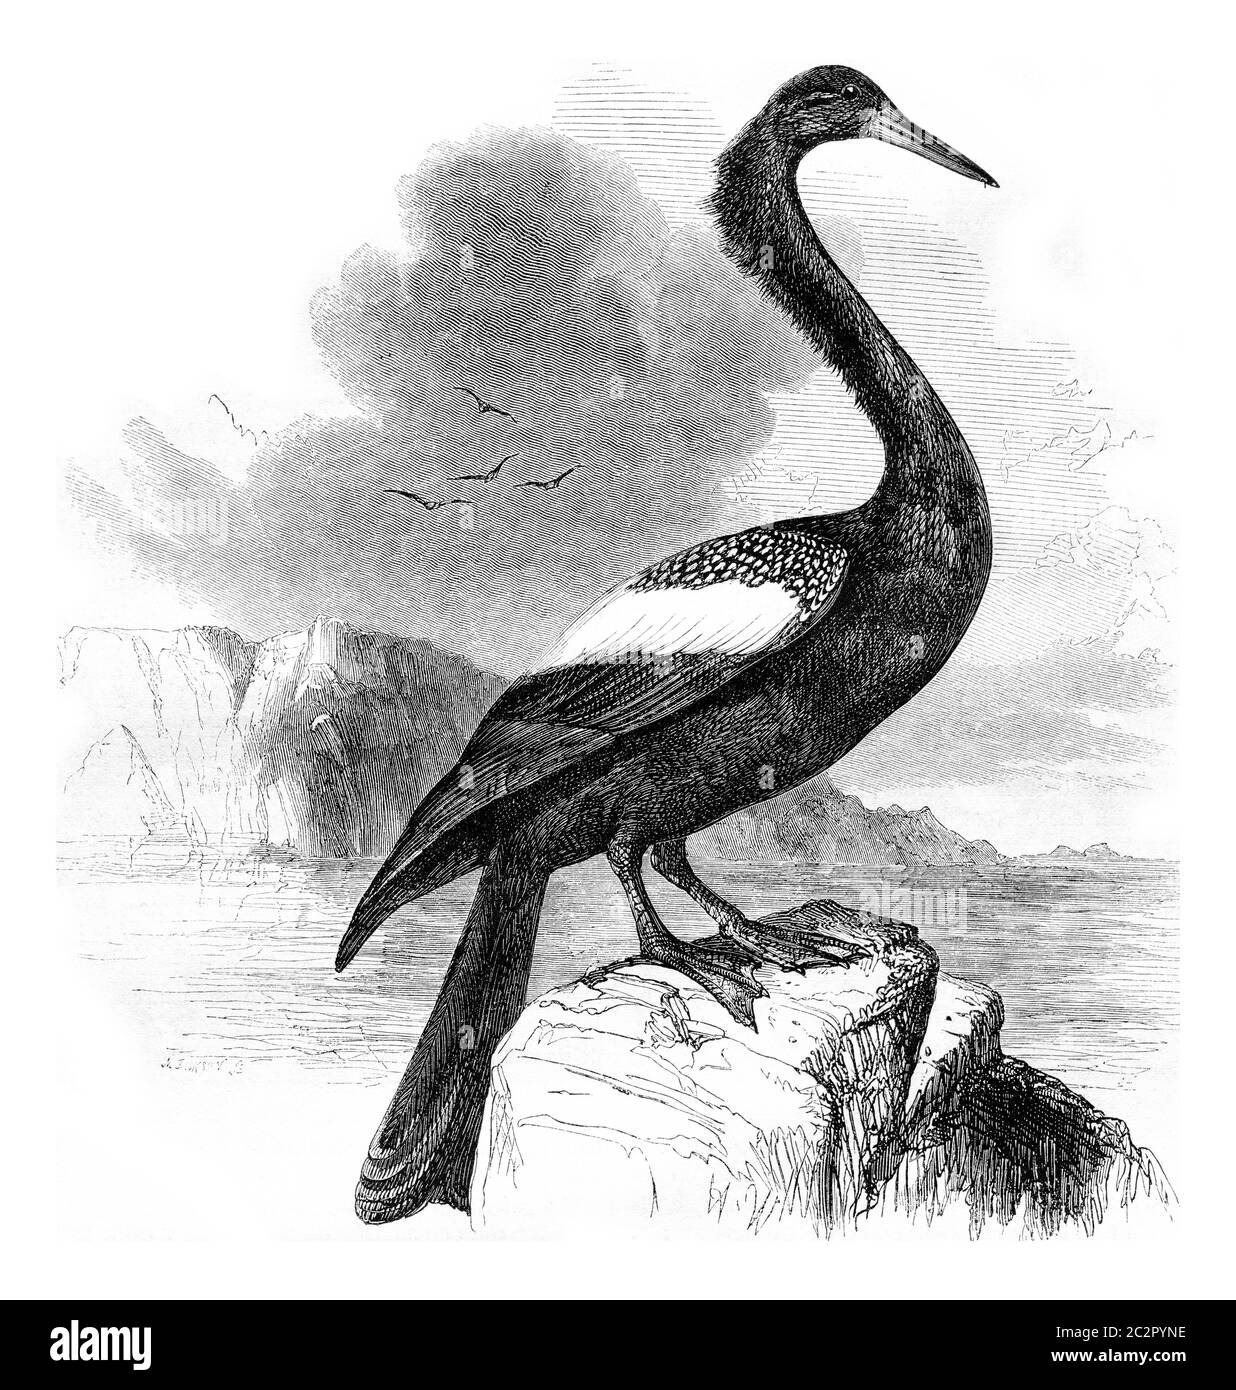 Anhinga, vintage engraved illustration. Magasin Pittoresque 1857. Stock Photo